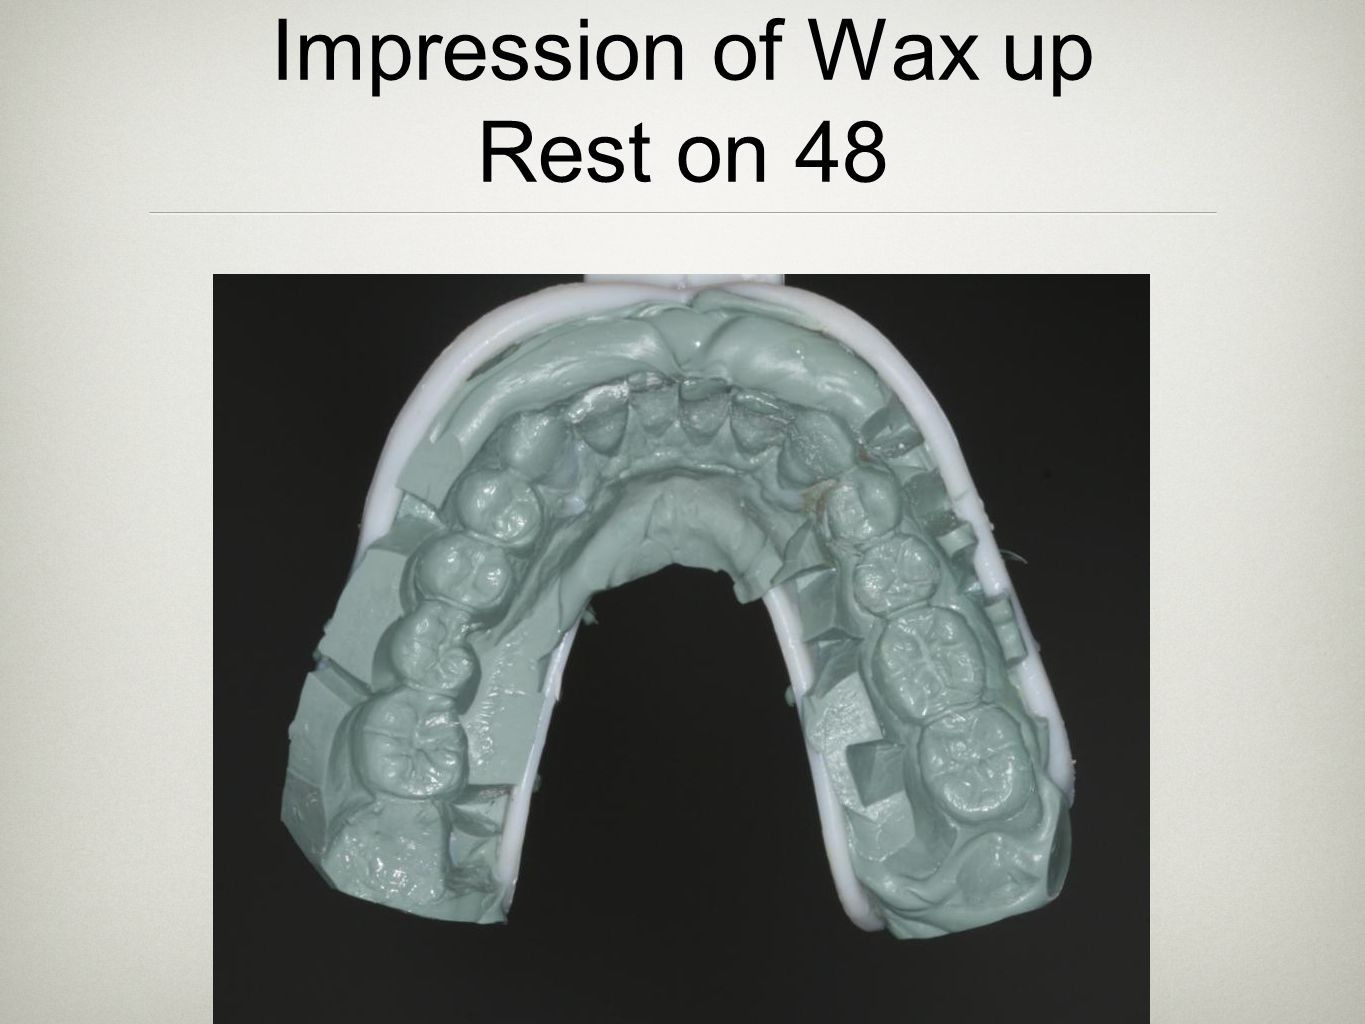 Impression of Wax up Rest on 48